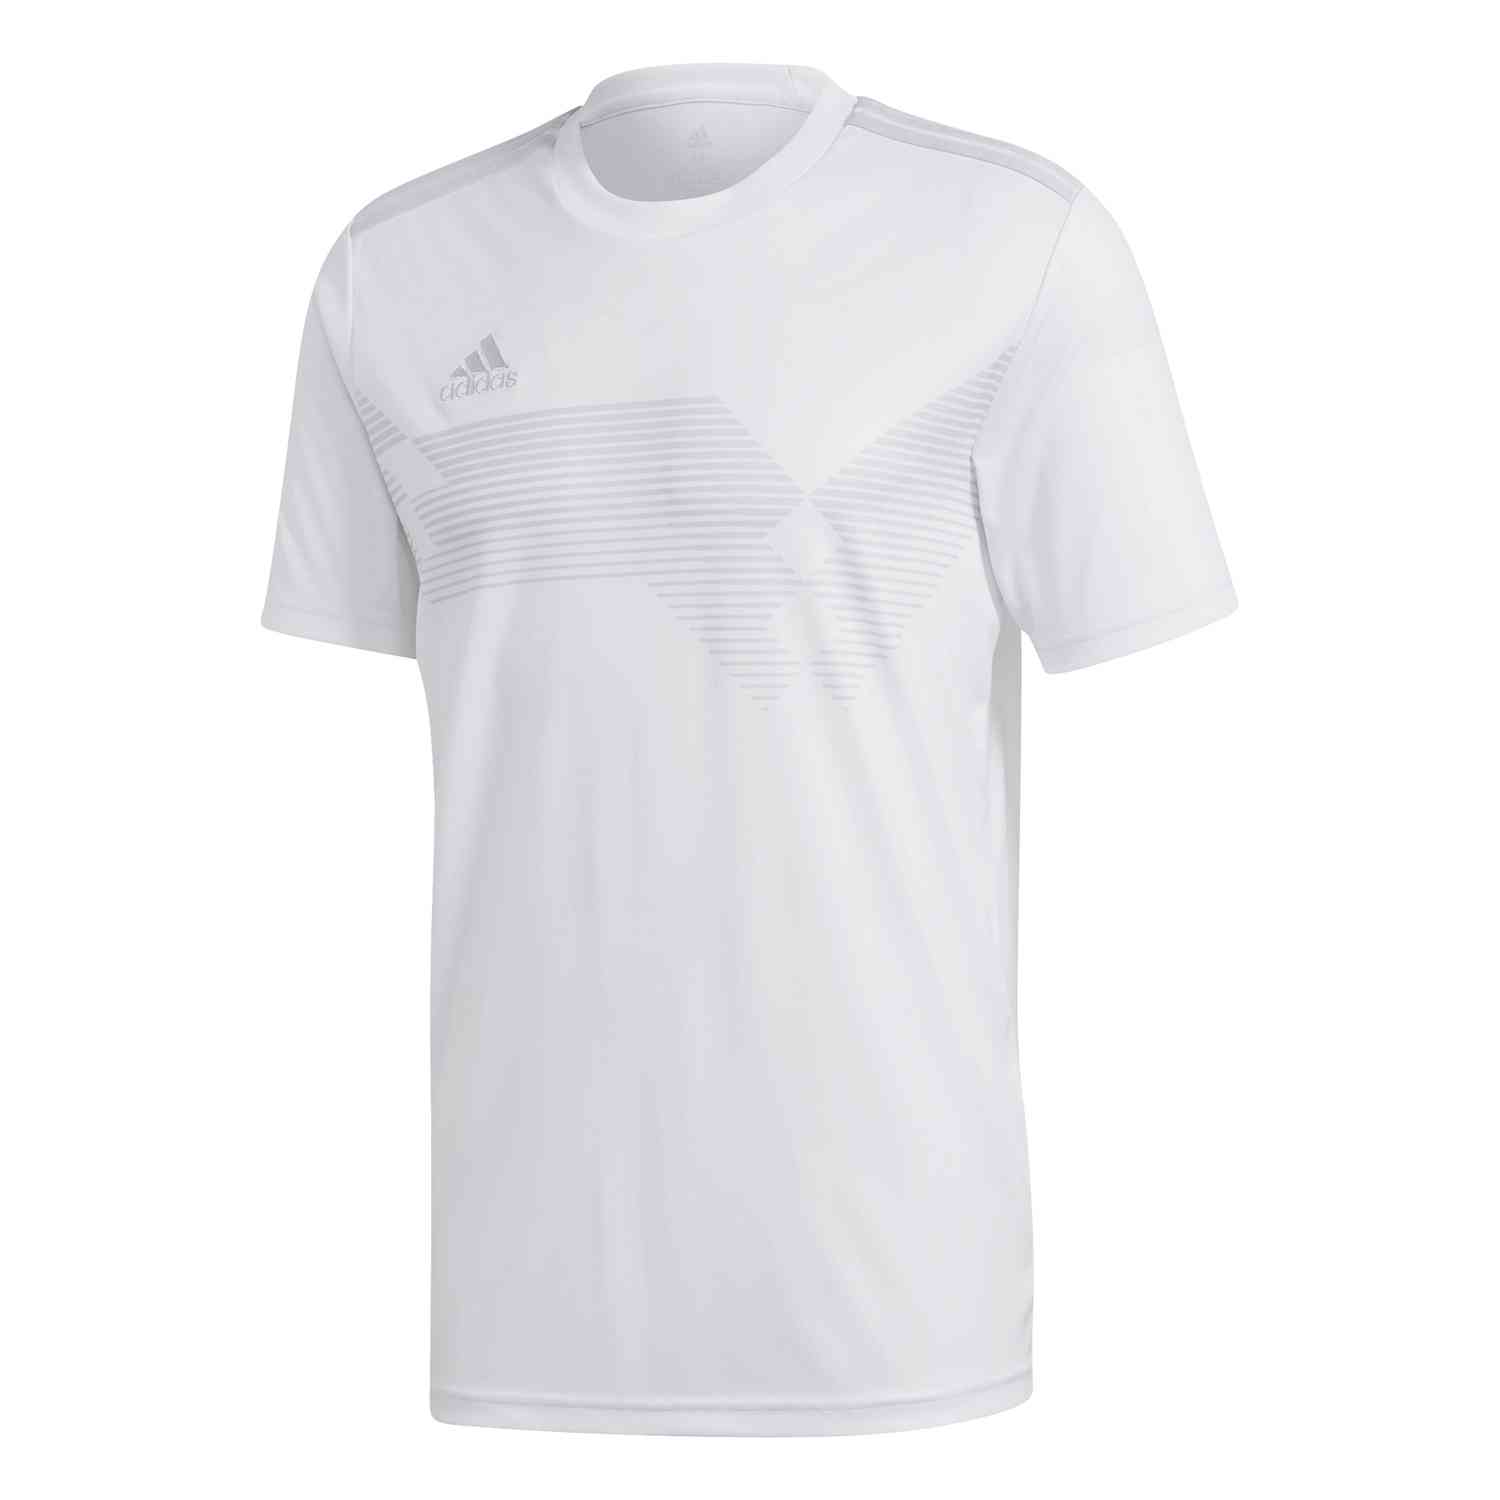 adidas Campeon 19 Jersey - White/Clear Grey - SoccerPro